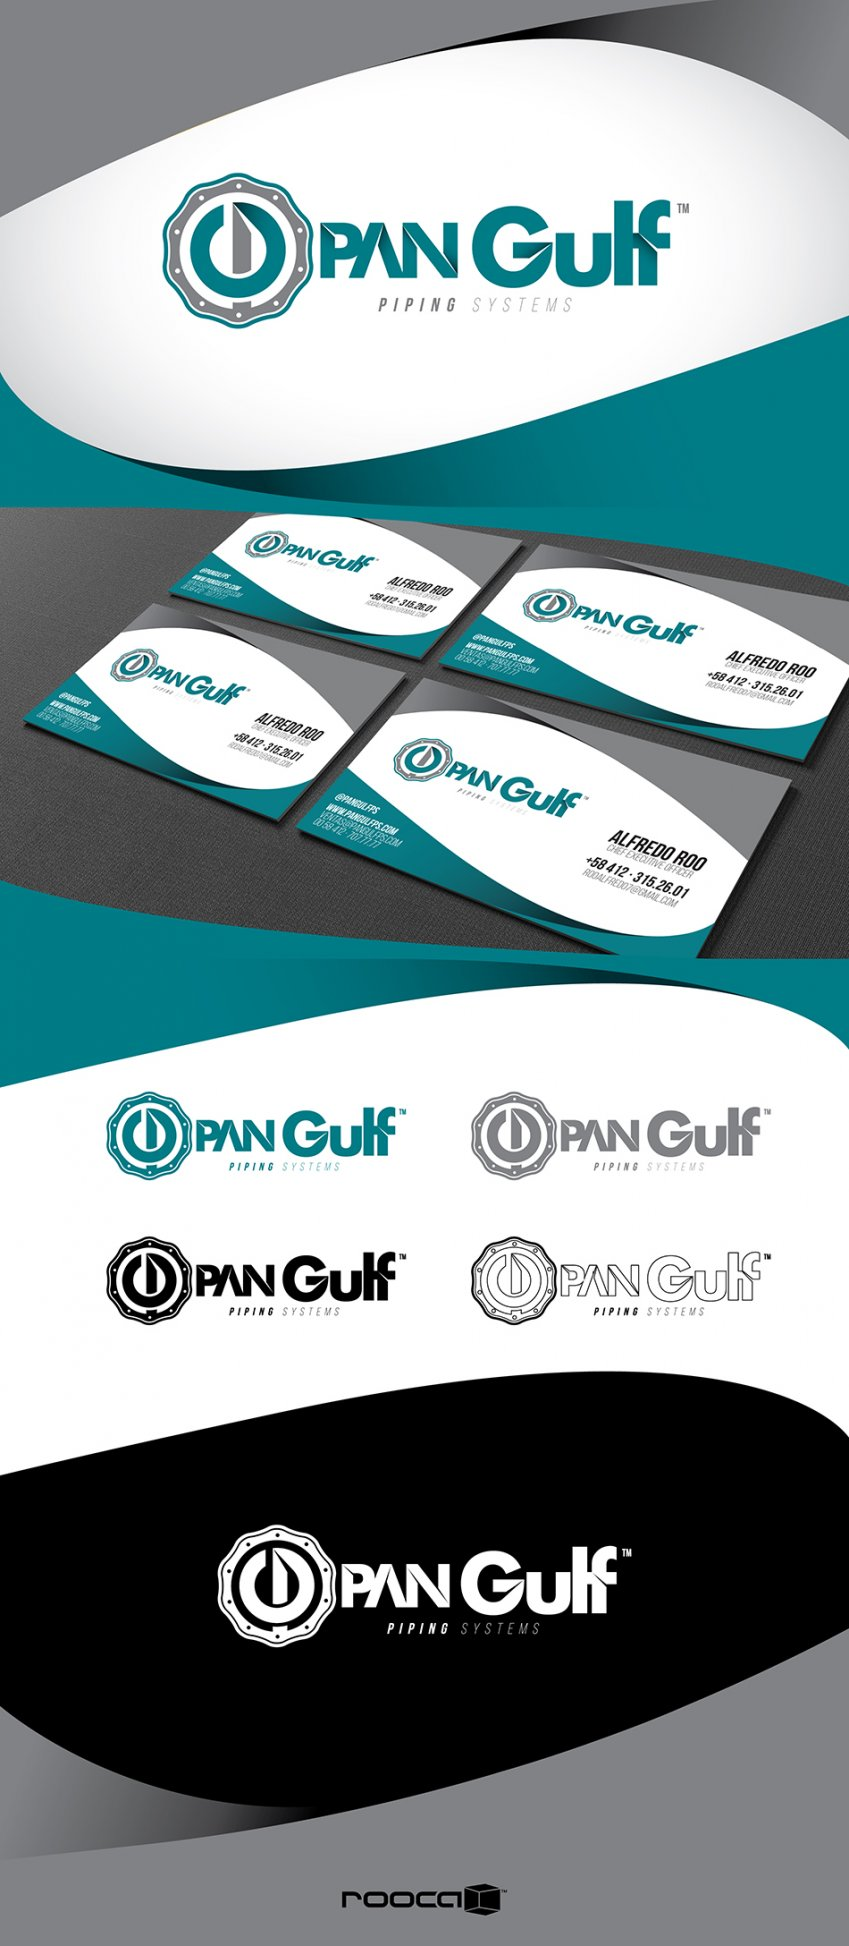 Gulf Piping Systems - Branding Identity - Prop 2